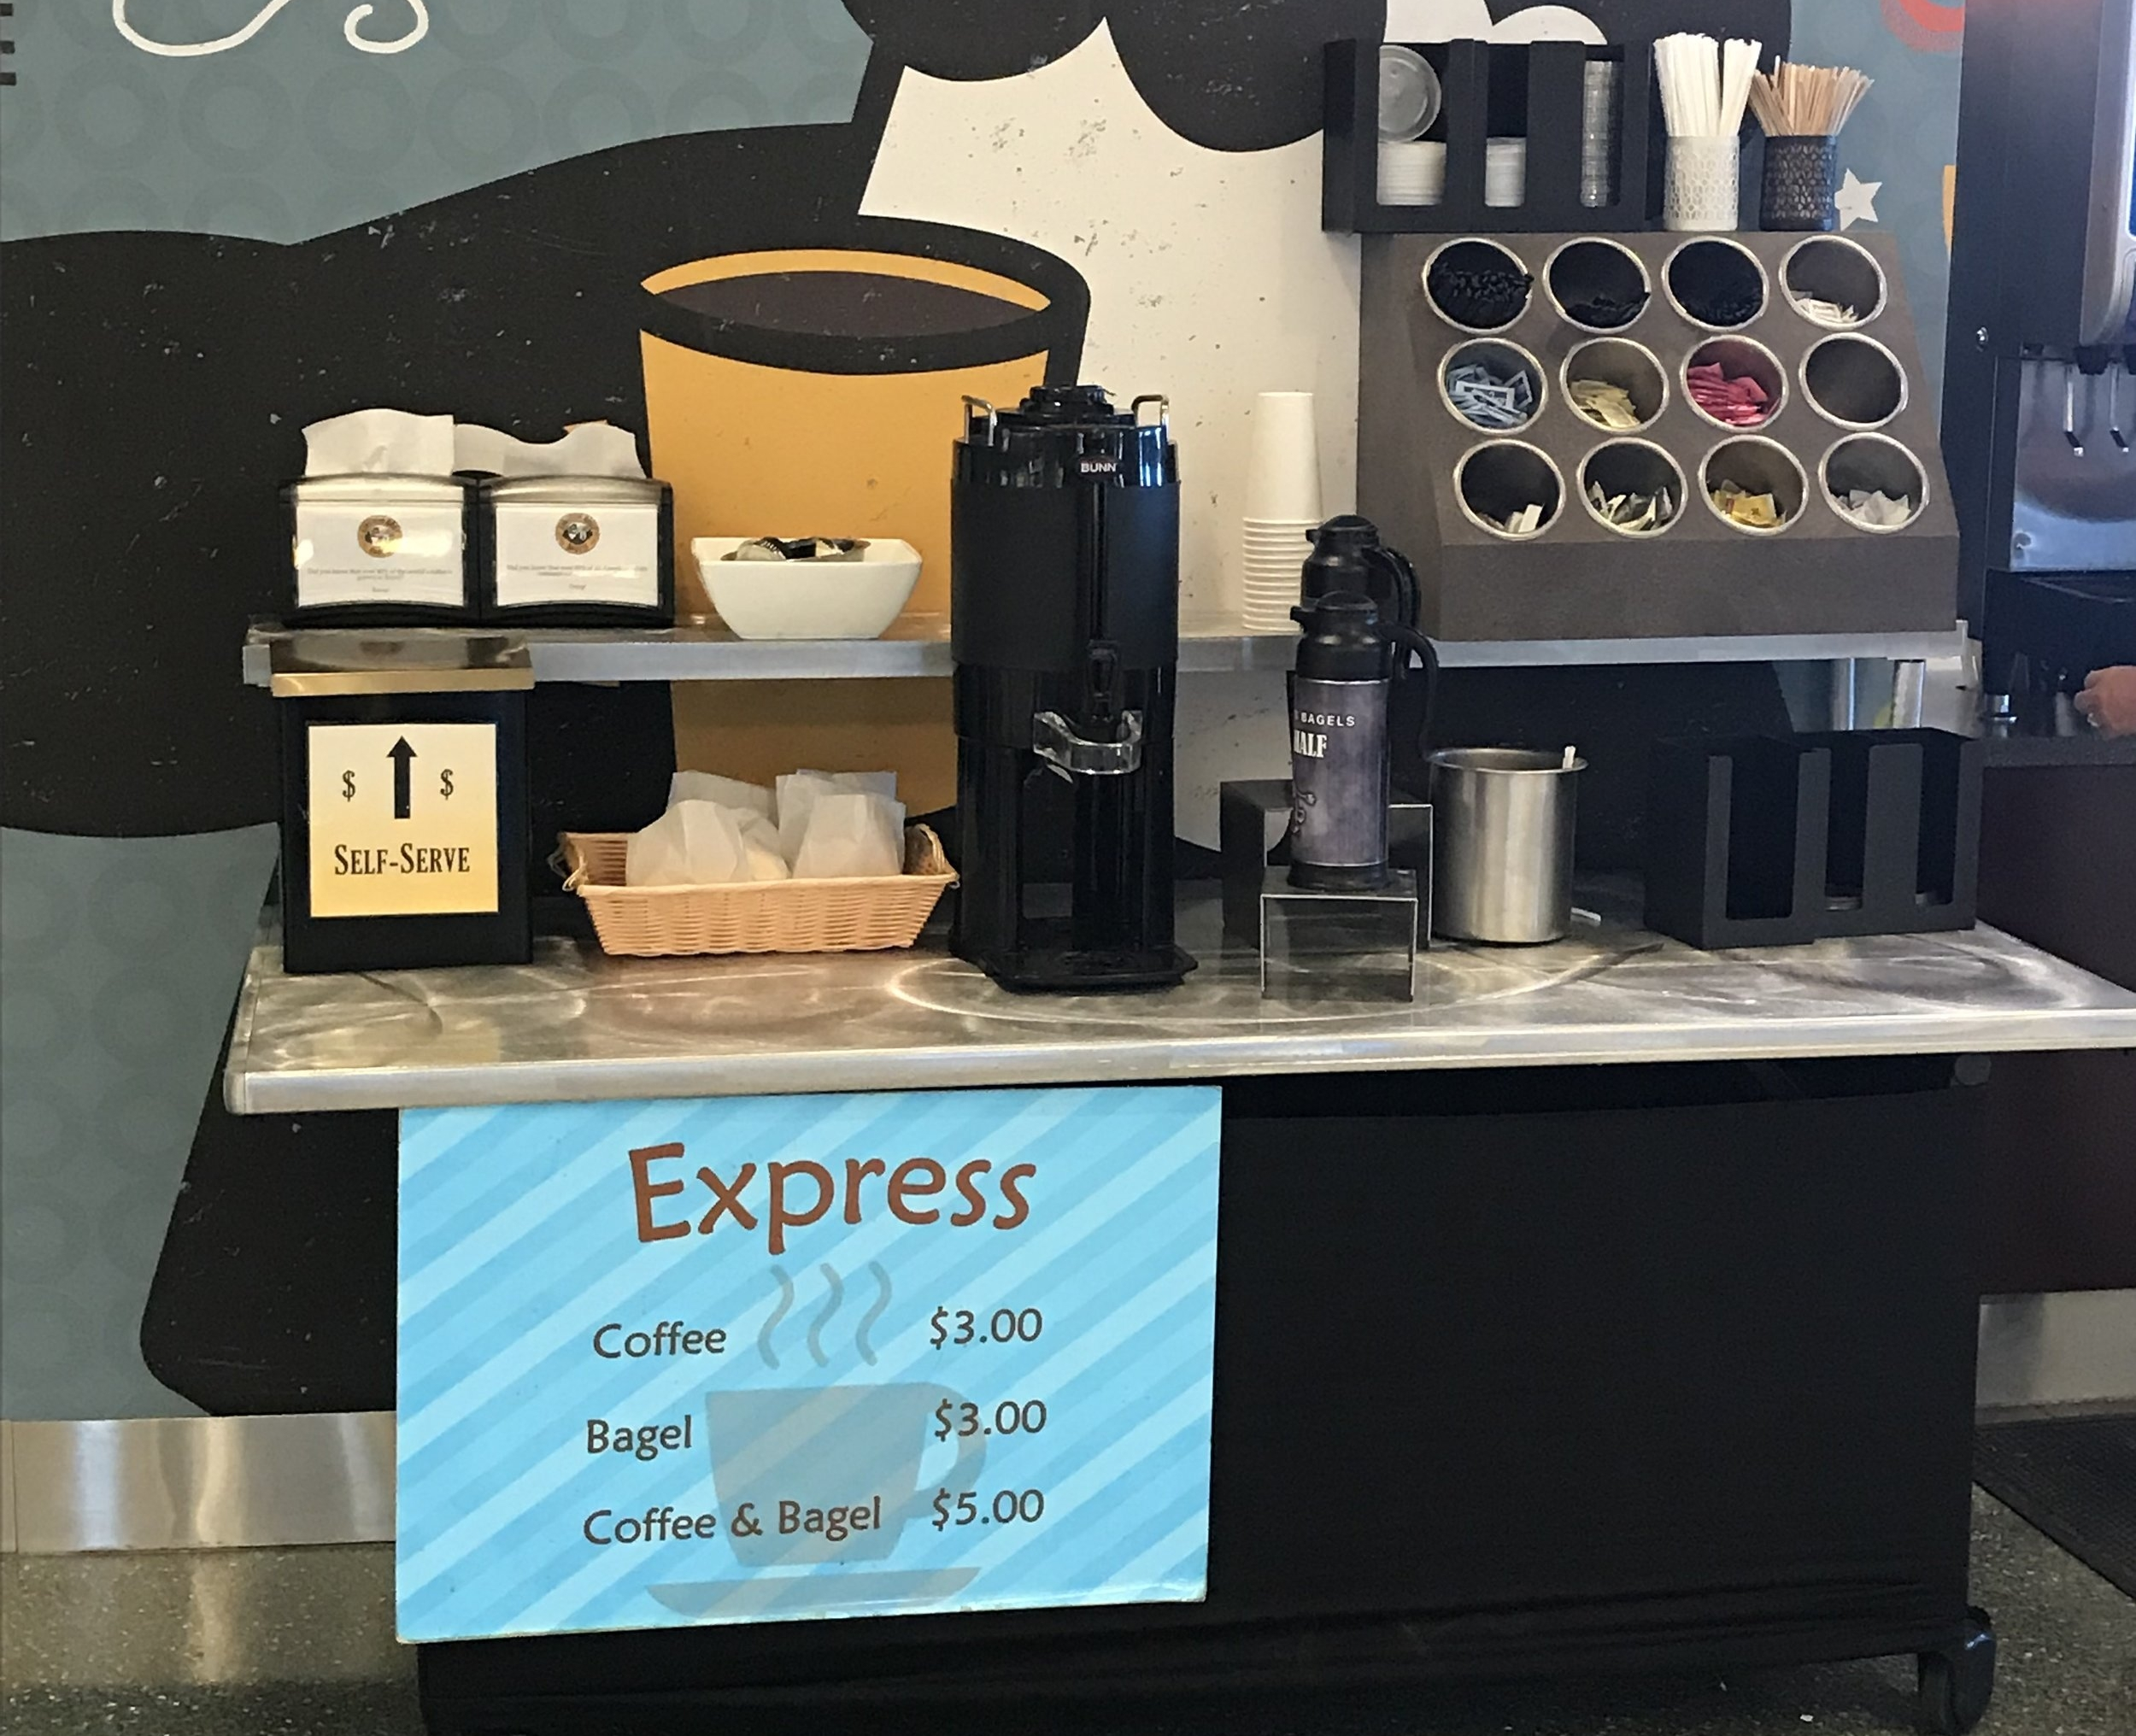 Boise Airport offers honor system for coffee & bagels - BoiseDev